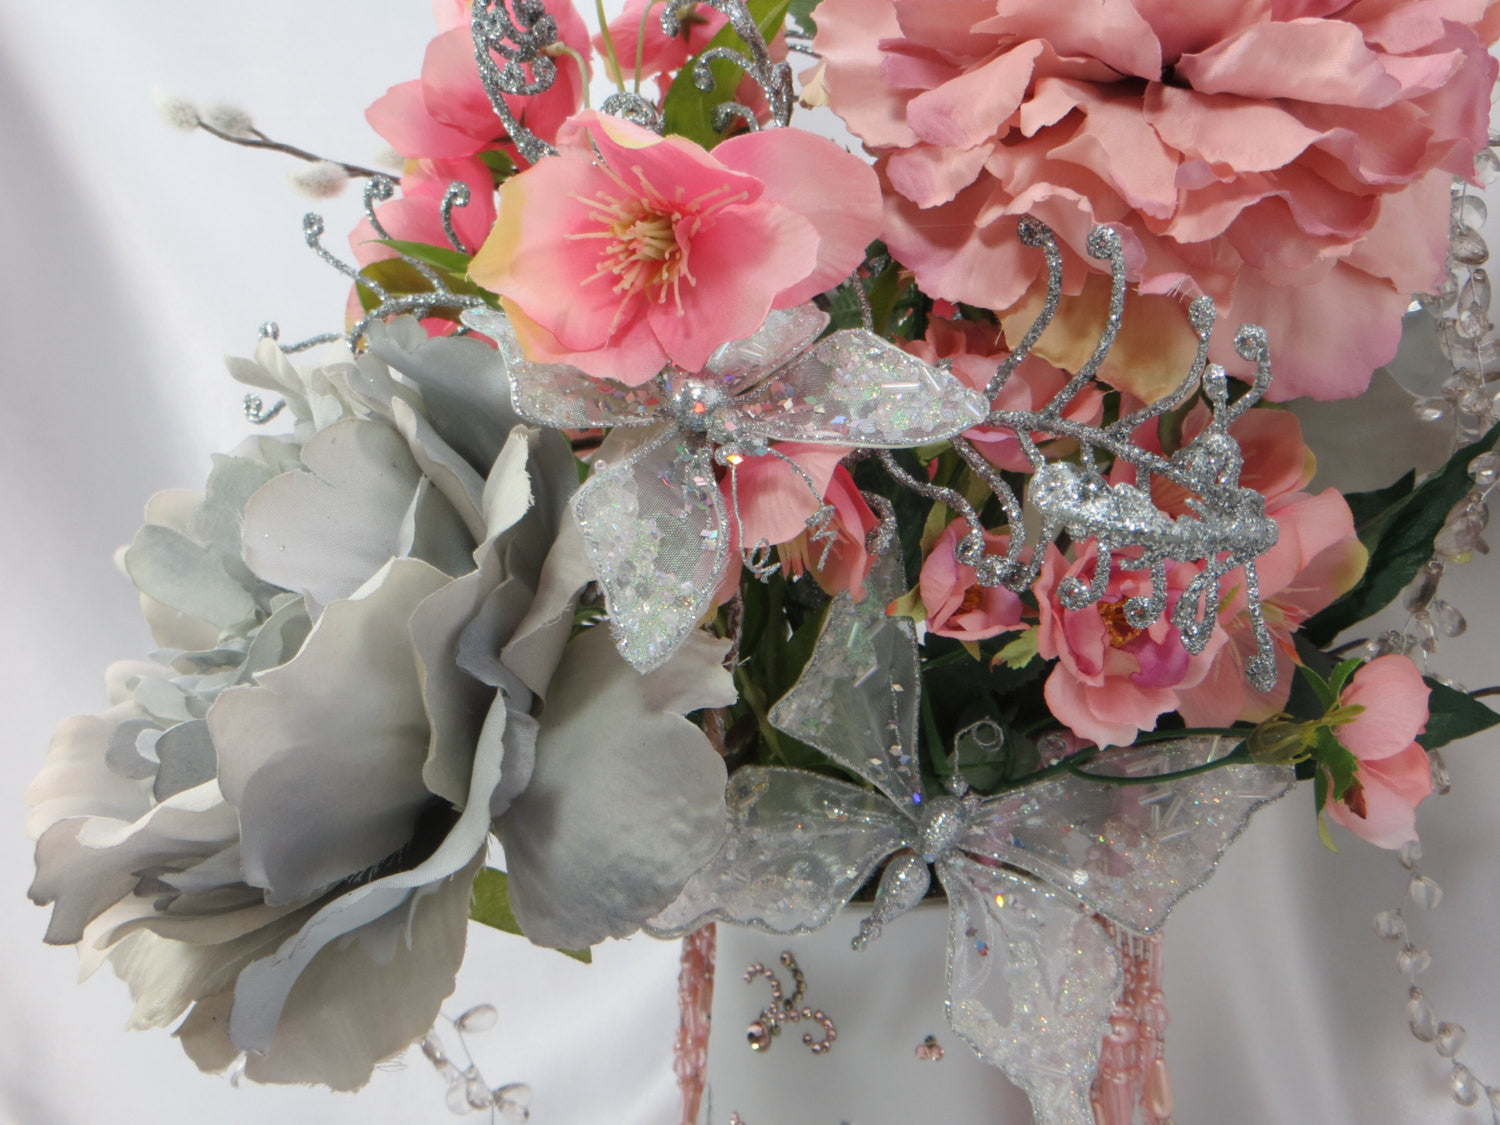 Pink and Gray Victorian Beaded Wedding Centerpiece Floral Arrangement for wedding or home decor with peonies, butterfly, wild roses & pearls - Odyssey Creations